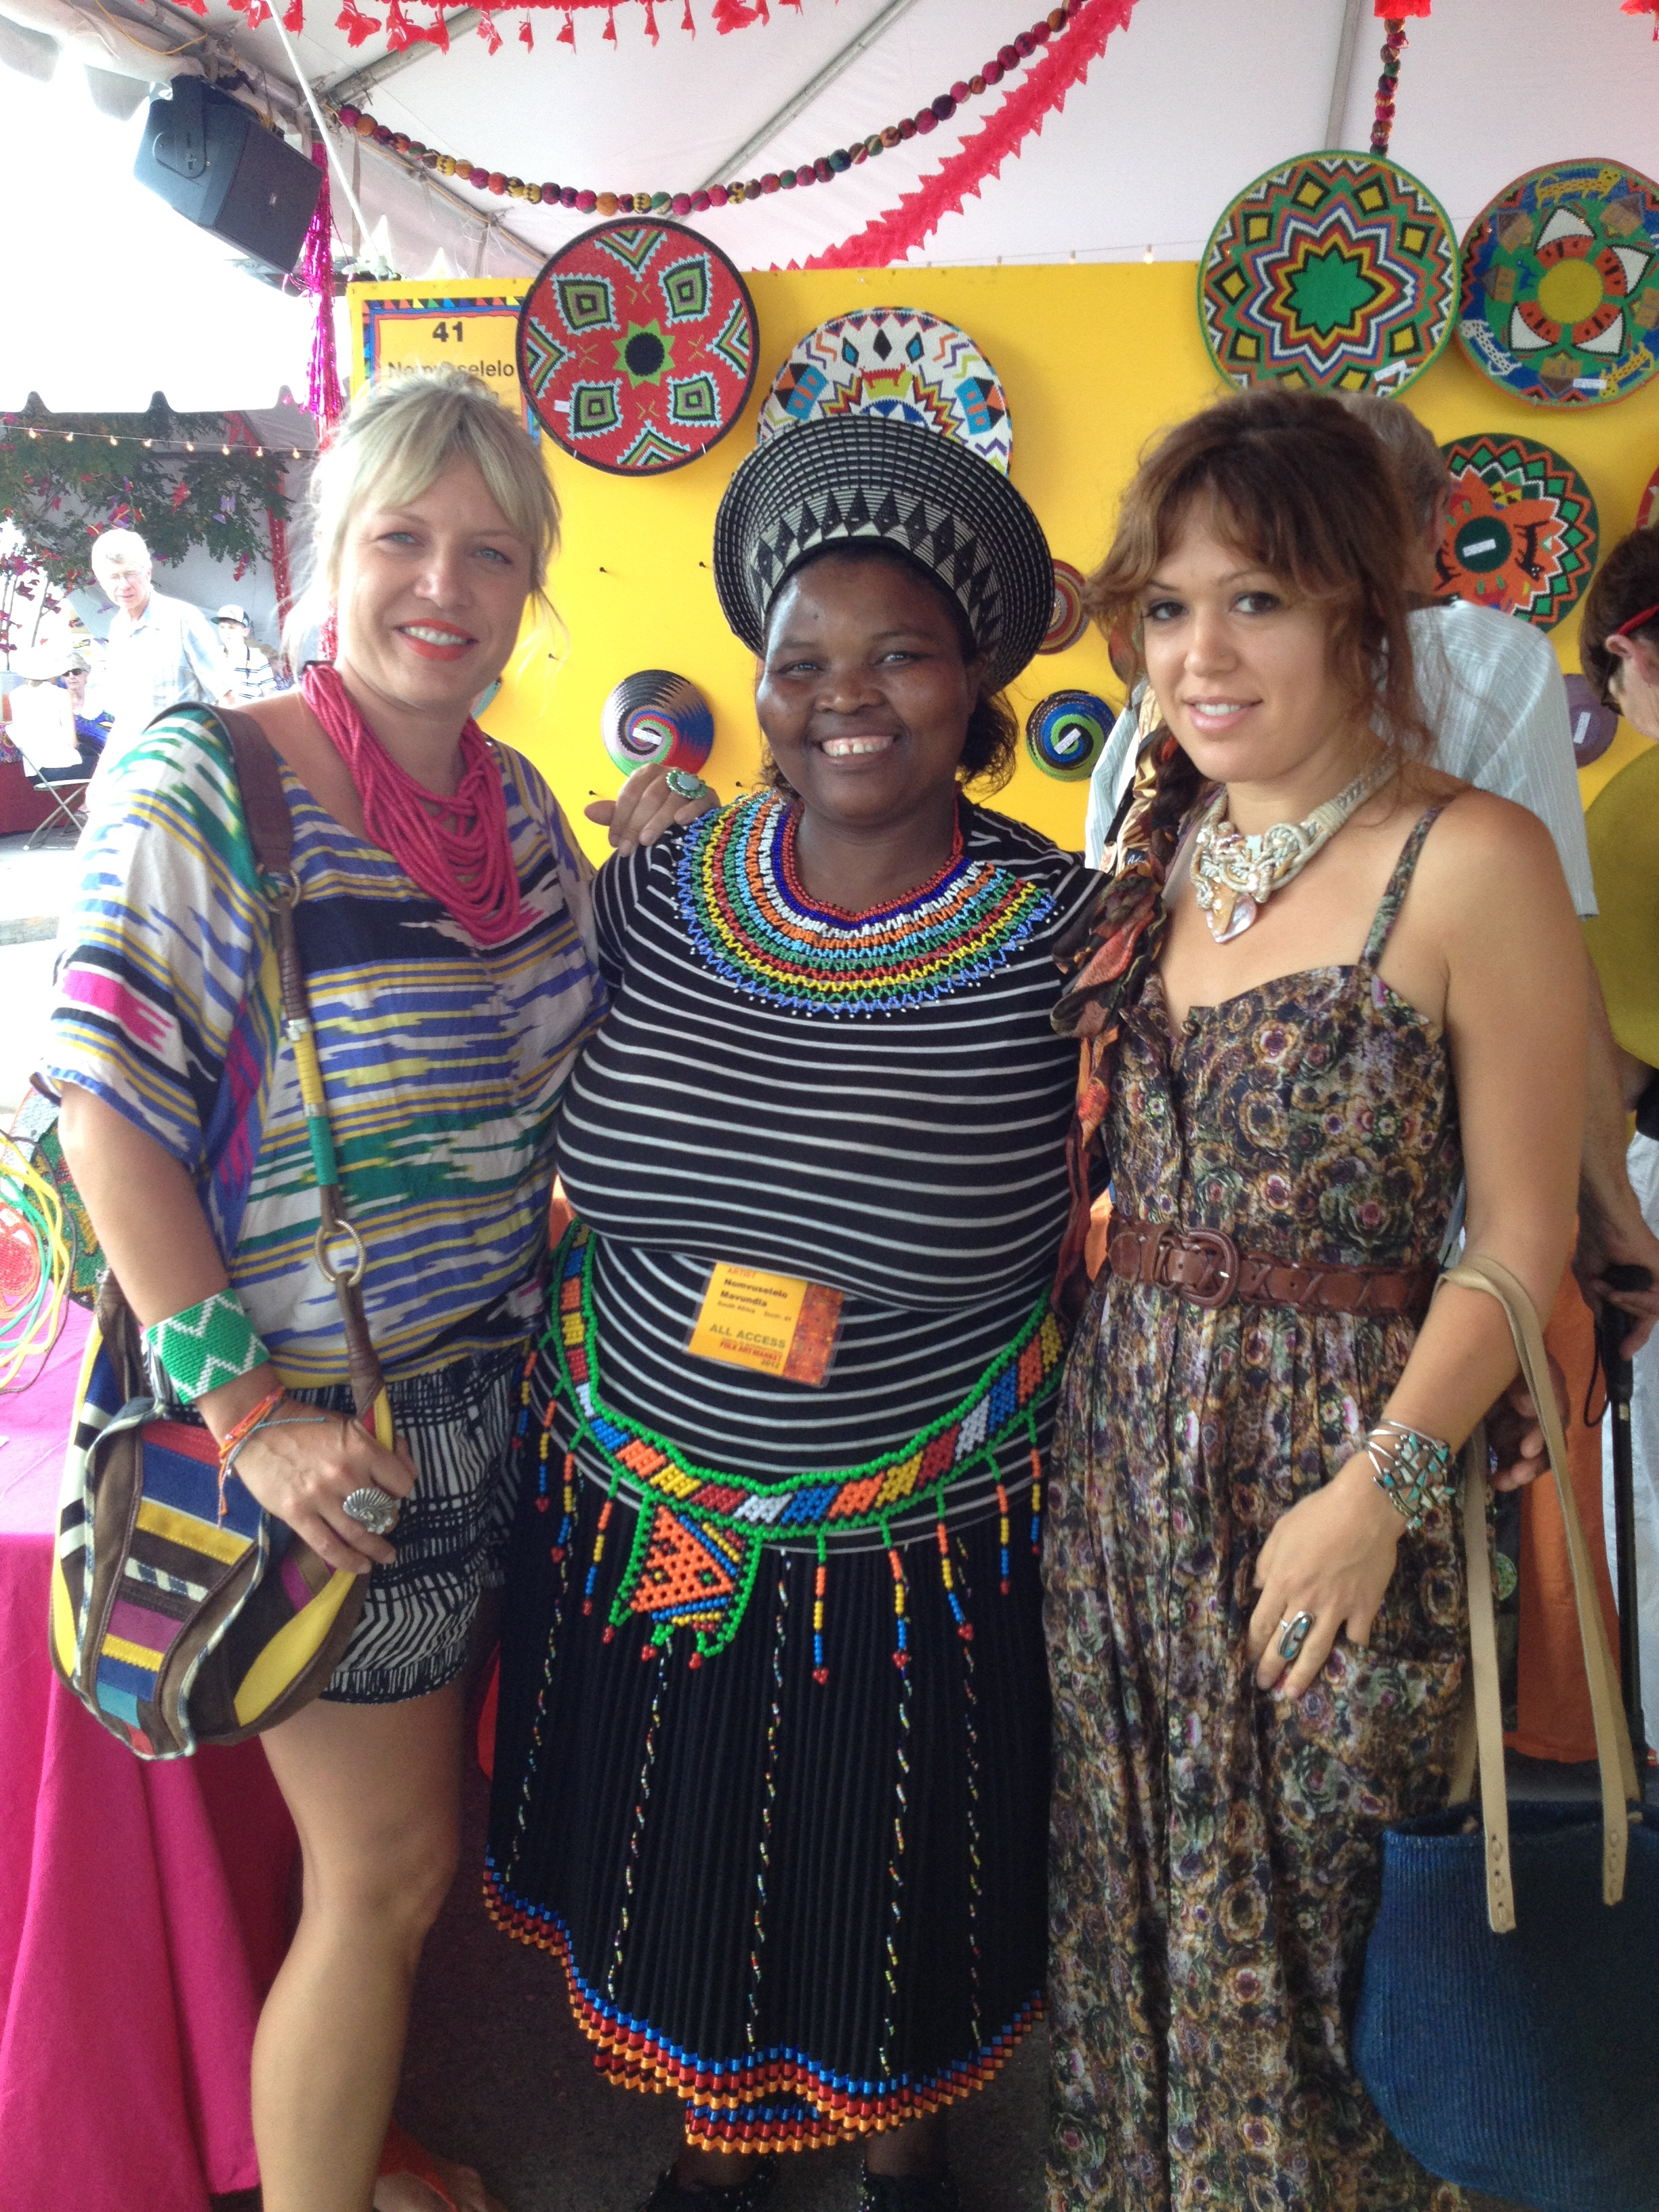 SANTA FE FOLK ART FESTIVAL PART 5: SOUTH AFRICAN ARTISANS